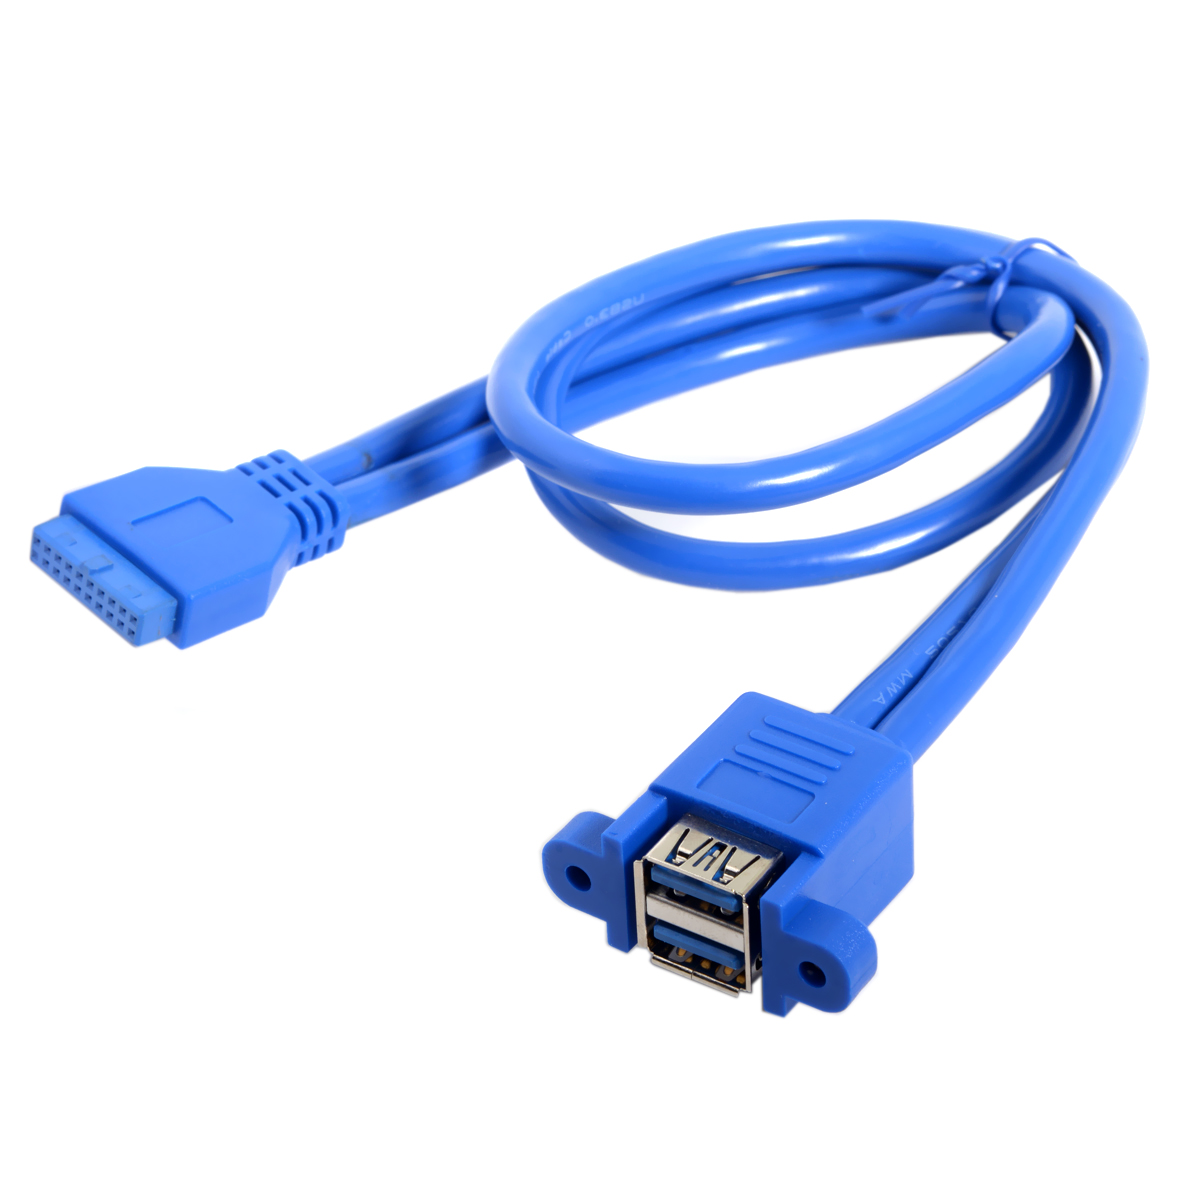 10pcs/lot    Dual Ports Stackable USB 3.0 Female Panel Type to Motherboard 20Pin Header Cable 50cm